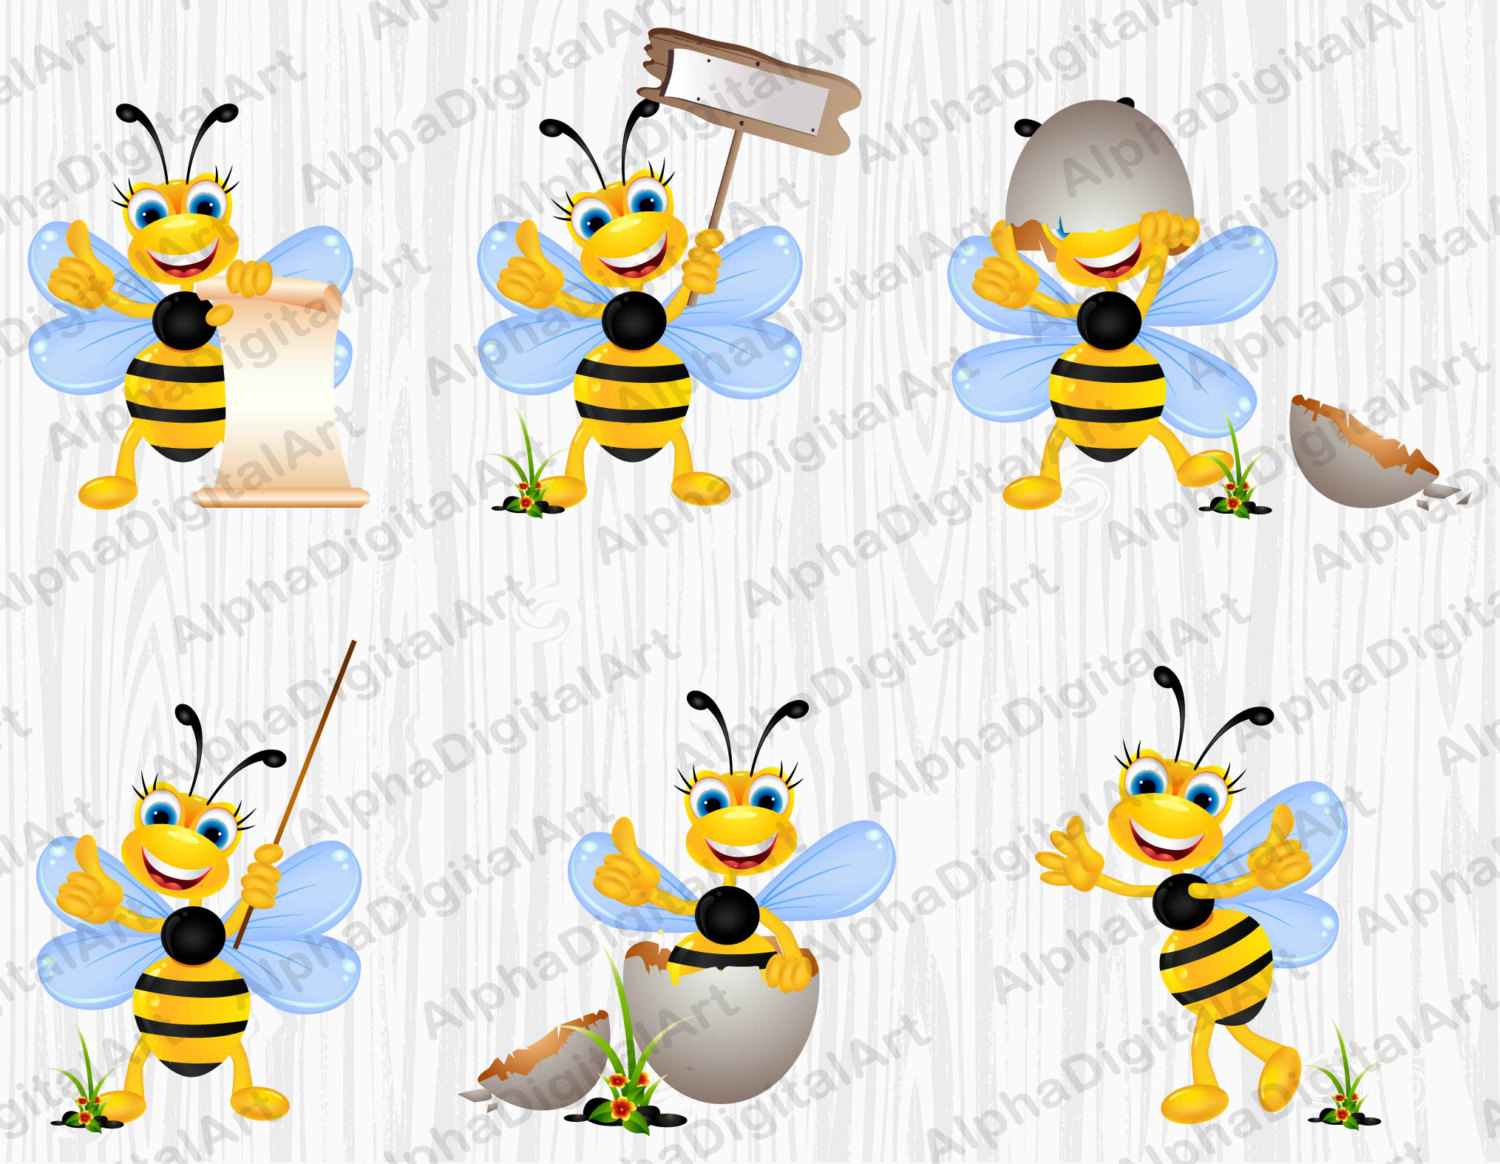 Ant clipart whimsical Insects Cartoon a digital bees